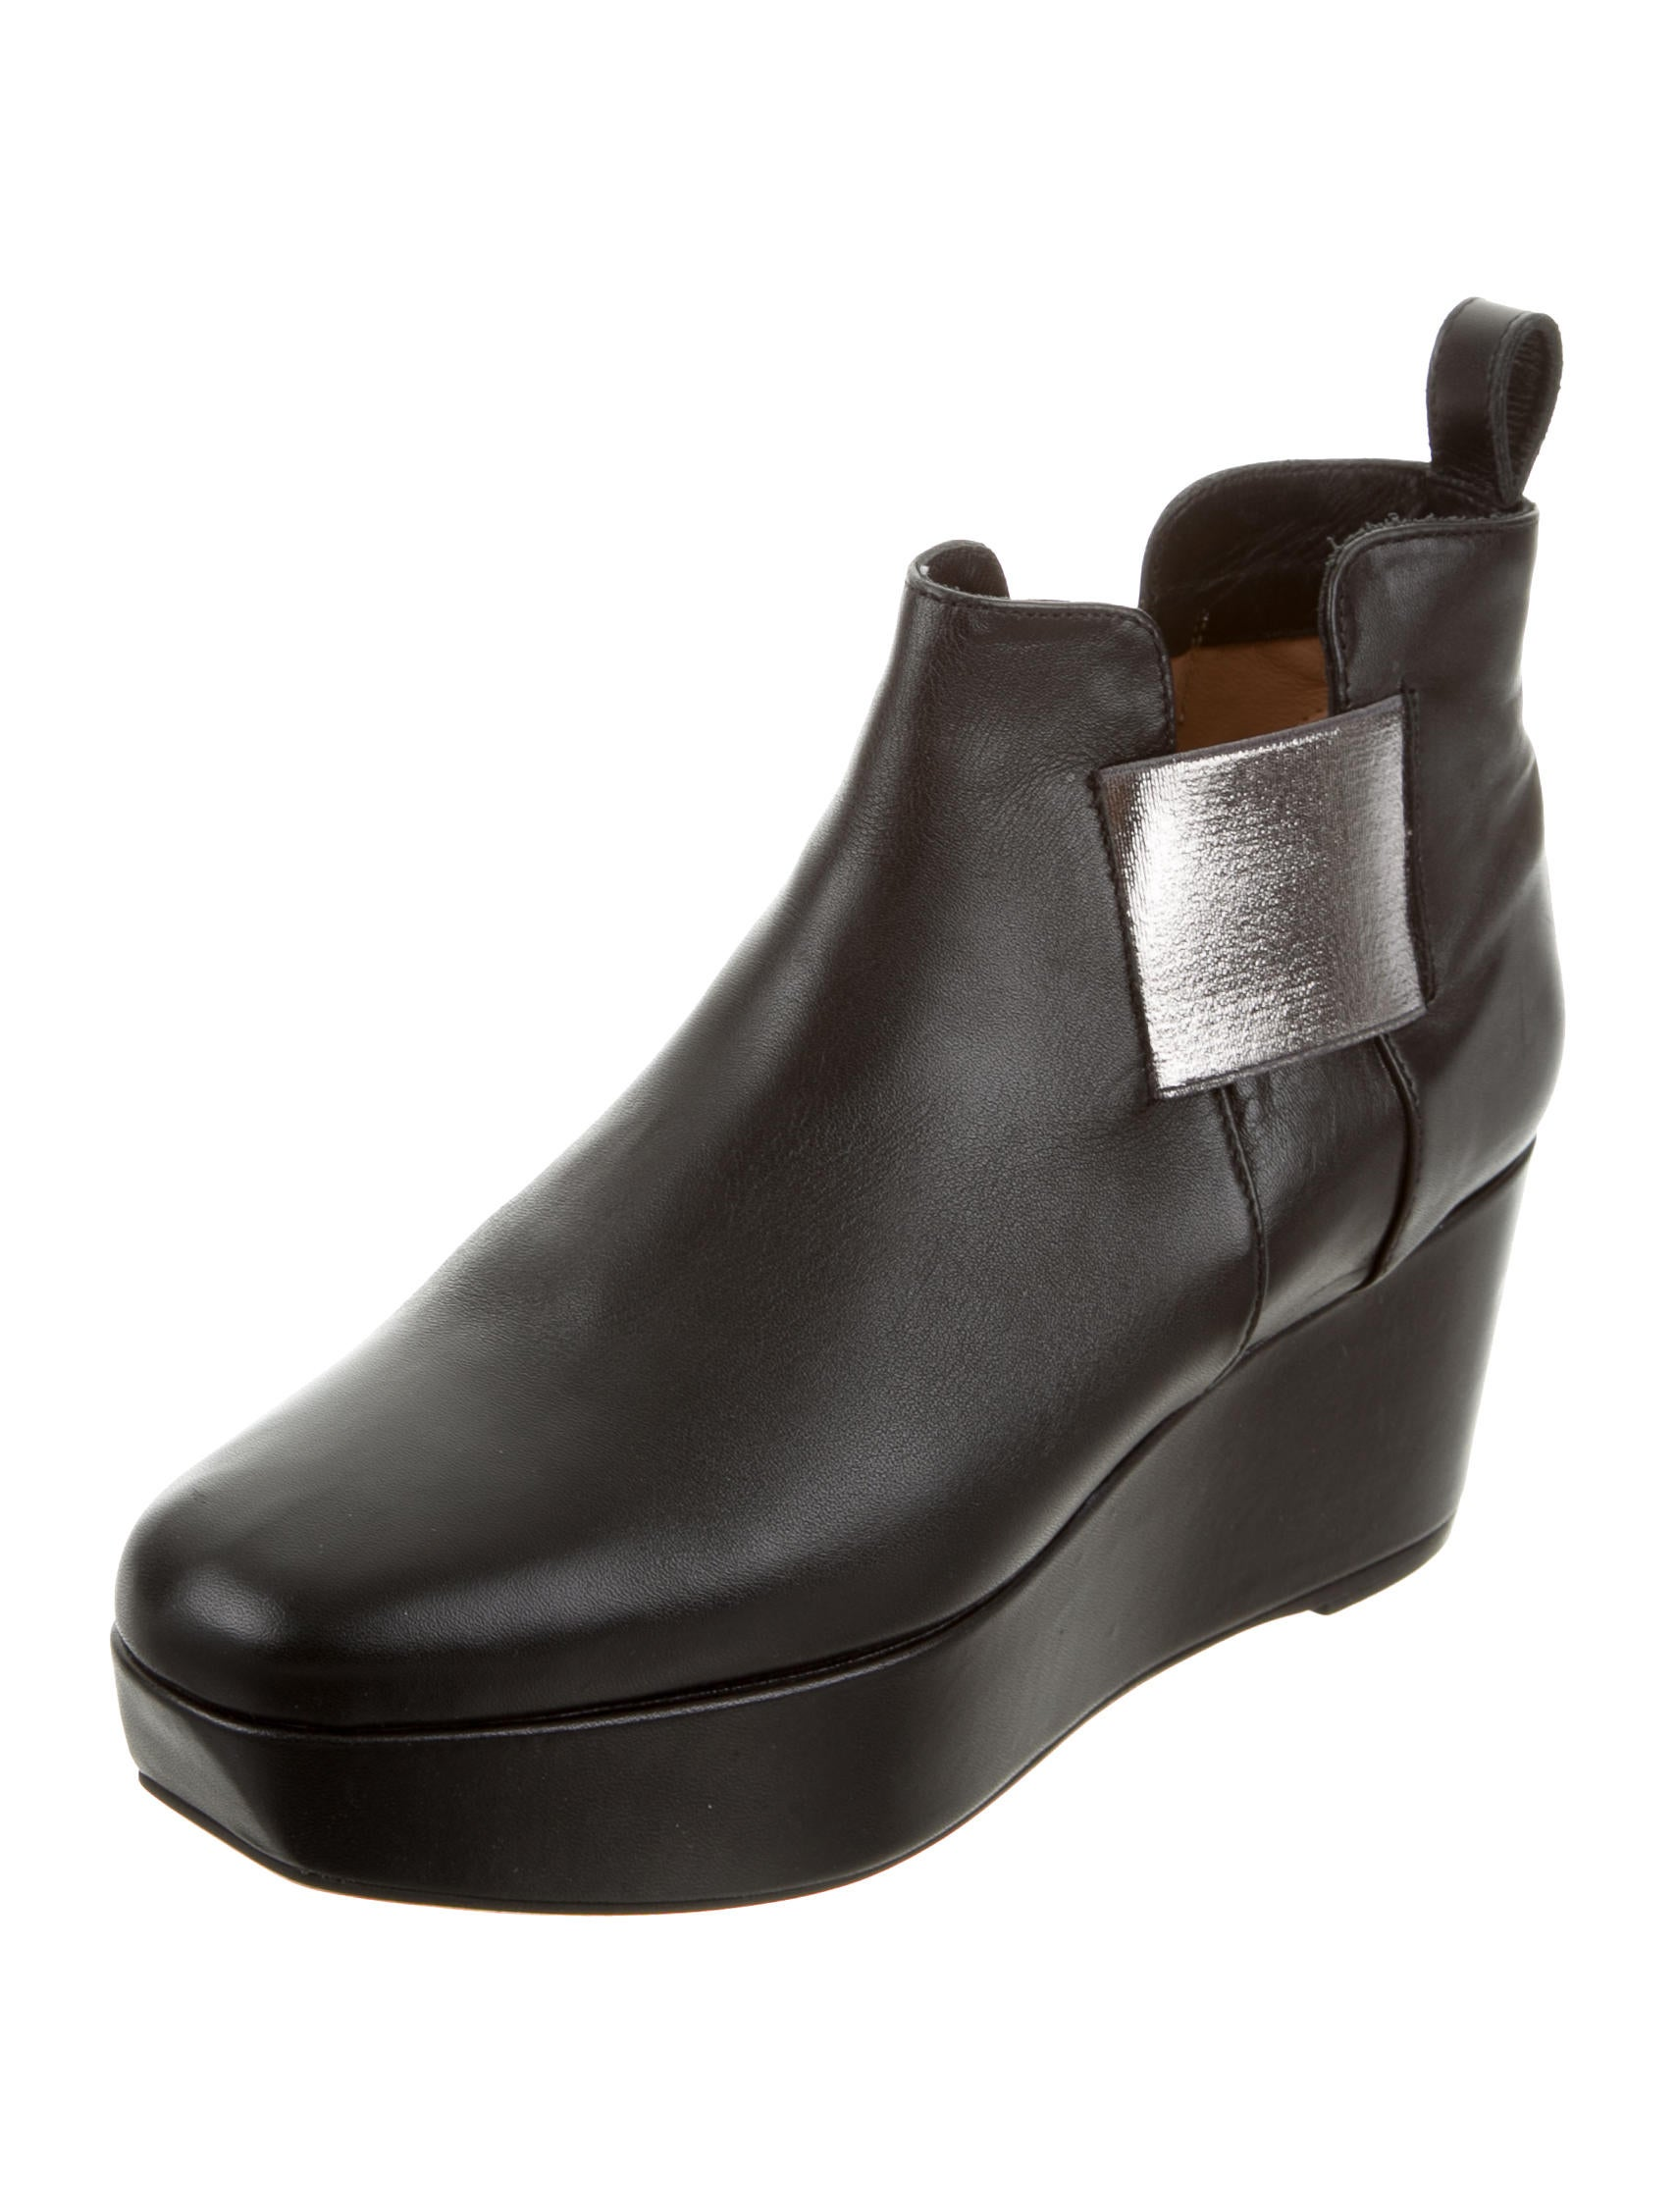 robert clergerie wedge ankle boots shoes rog24019